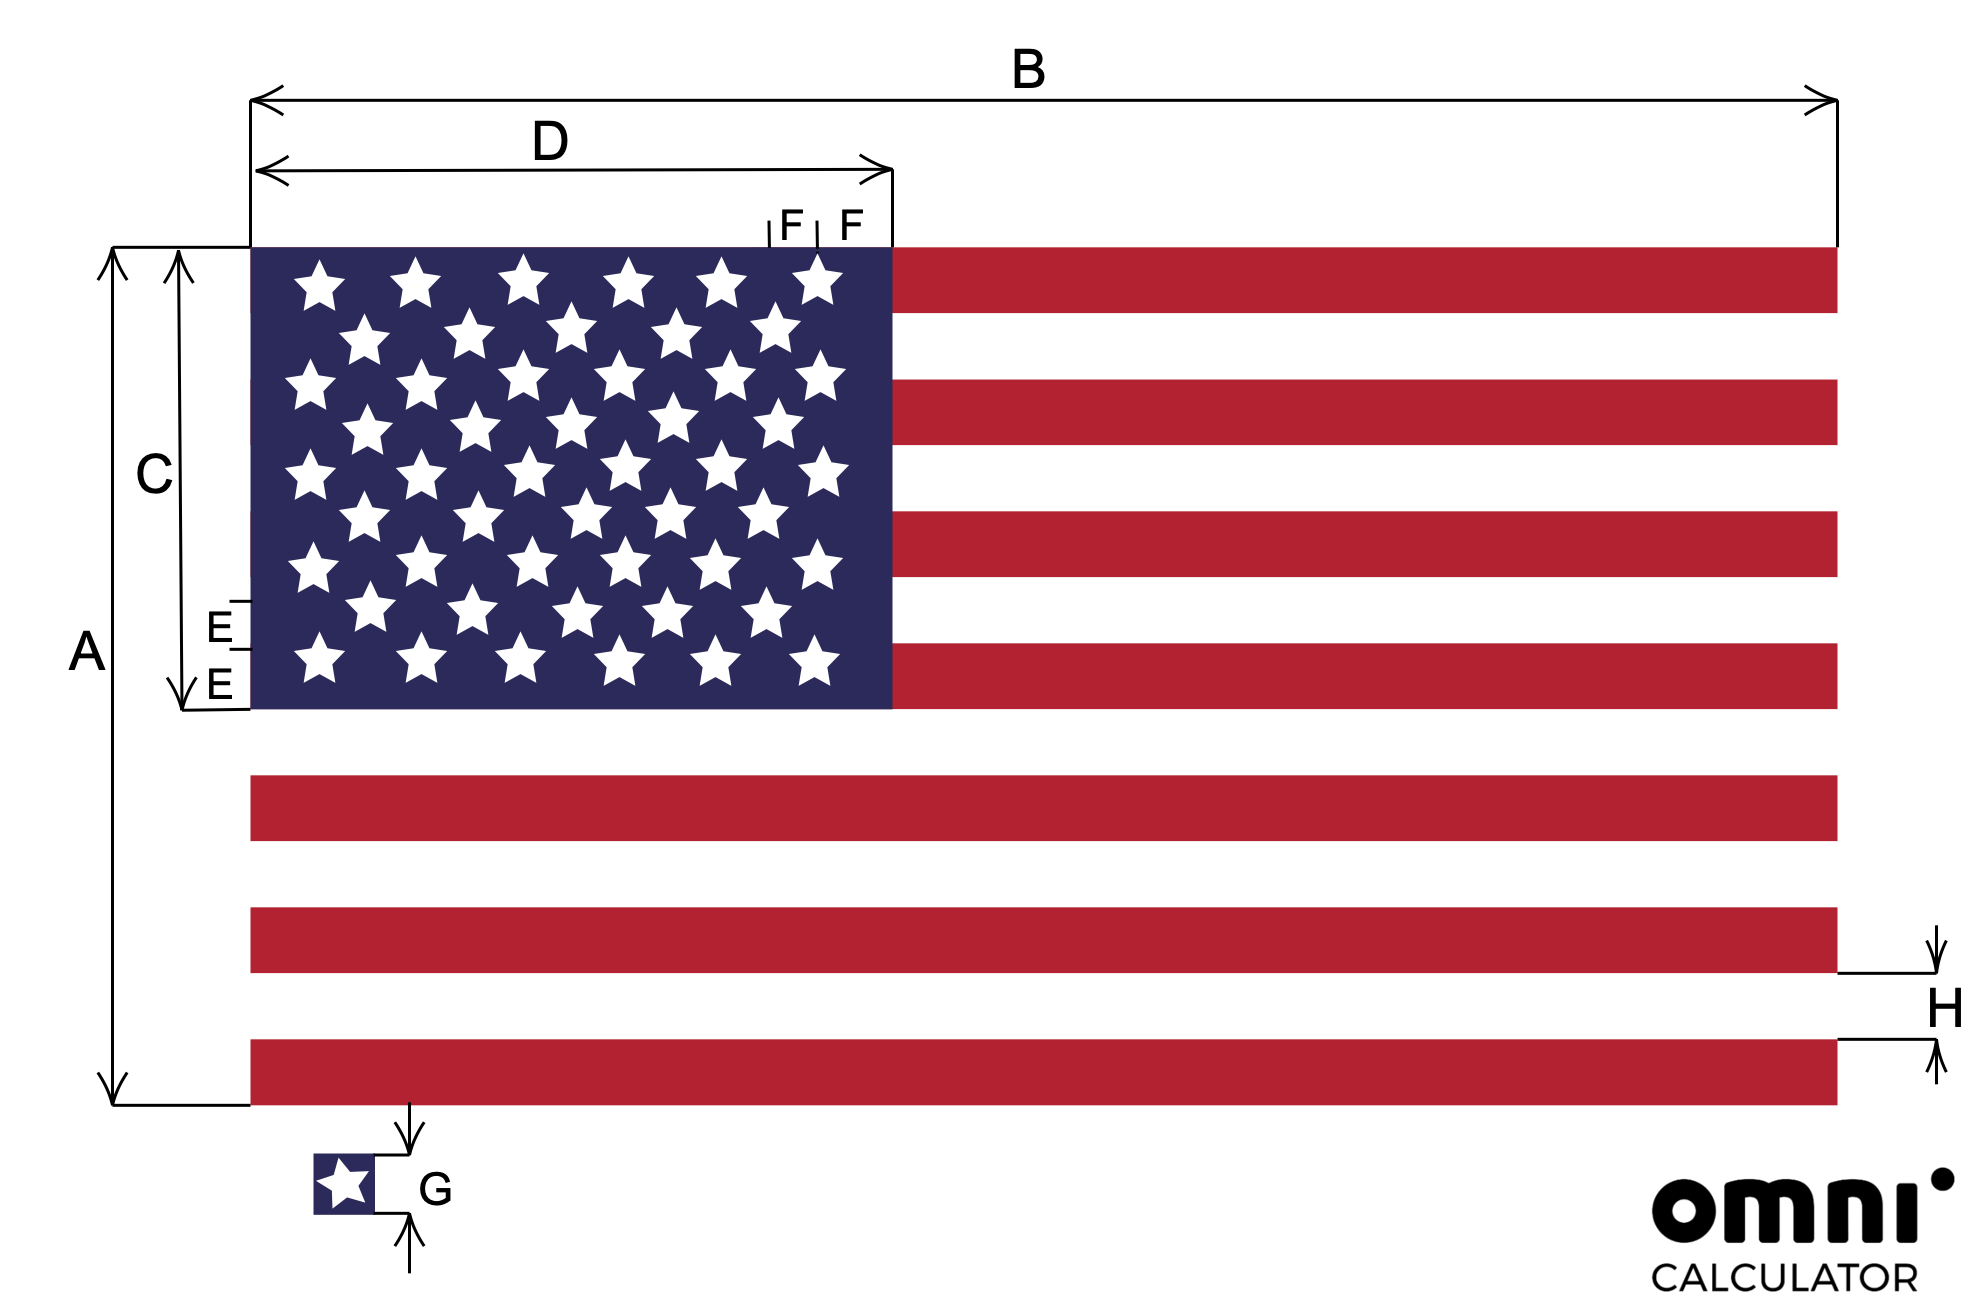 the US flag and it's proportions